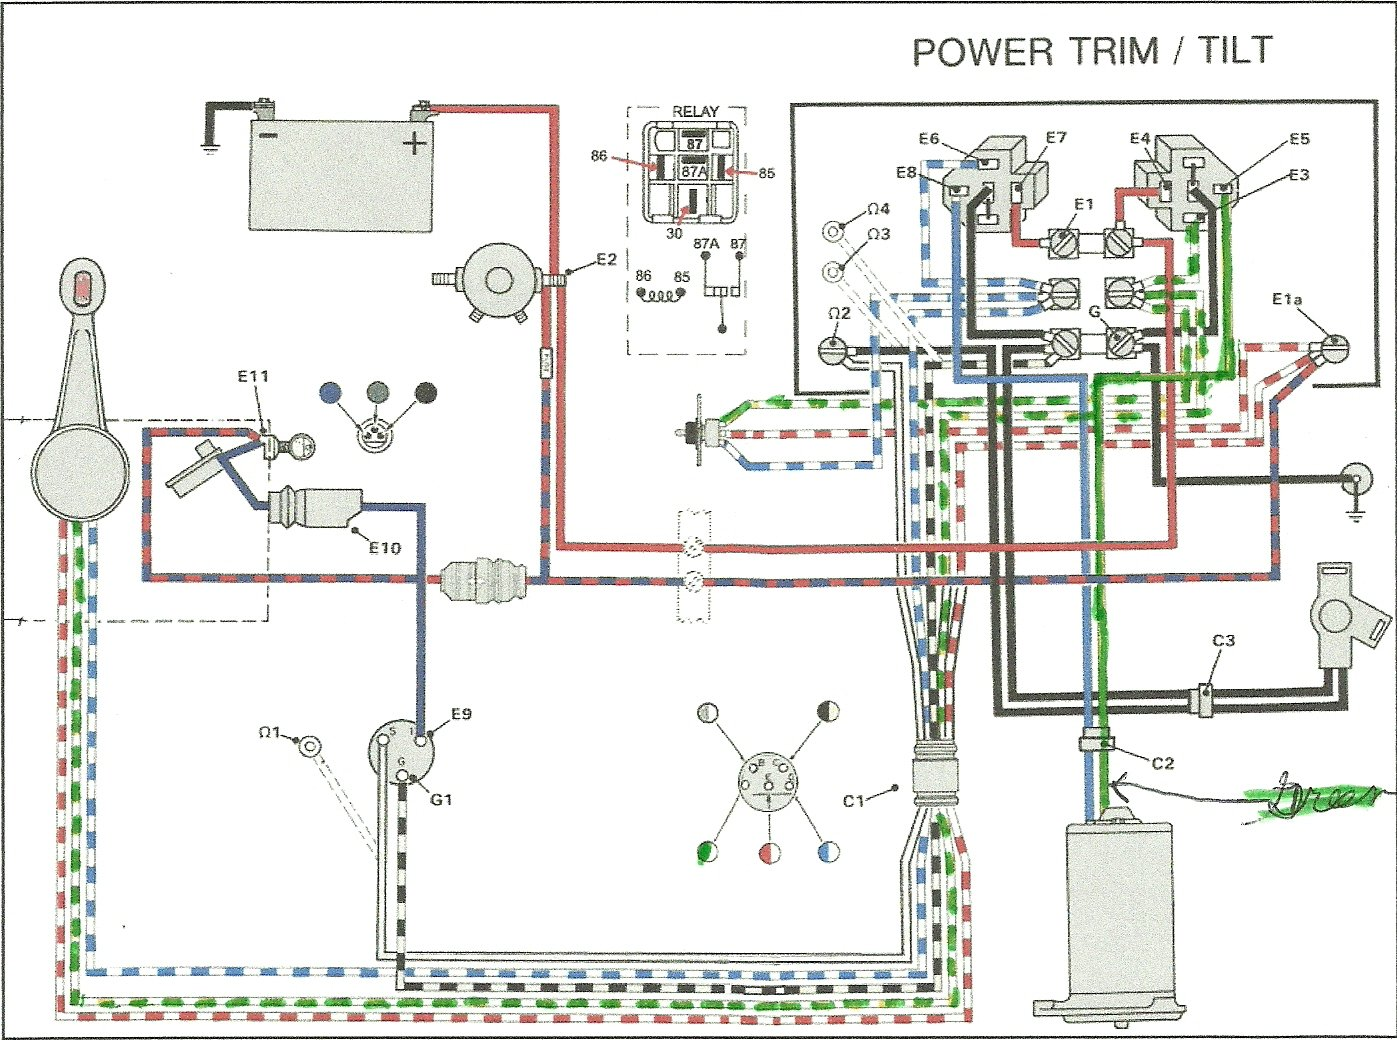 Wiring Diagram For Skeeter Tilt Page 4 And Schematics 1999 Zx190c Faria Multifunction Gauge Diy Enthusiasts Source I Have A 1996 60 Hp The Power Trim Was Working Fine Last 85 Mercury Outboard